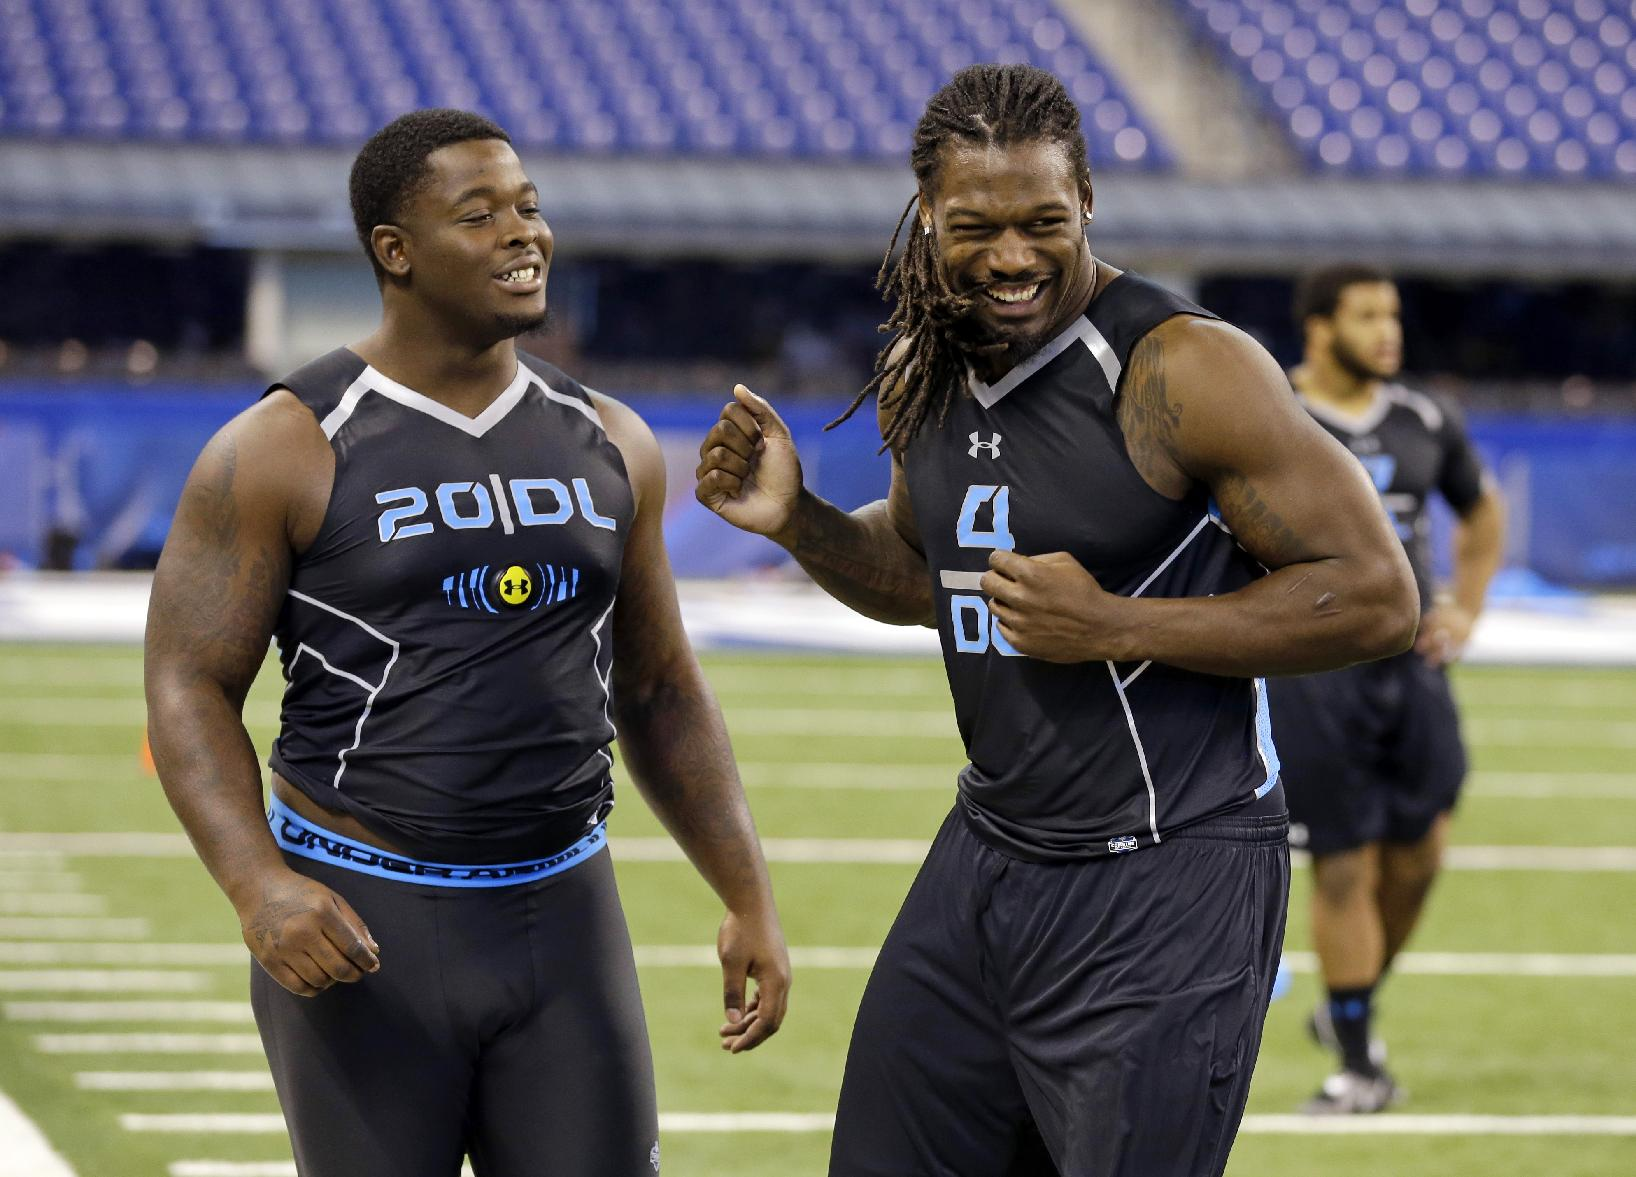 South Carolina defensive lineman Jadeveon Clowney, left, jokes with Florida State defensive lineman Timmy Jernigan during drills at the NFL football scouting combine in Indianapolis, Monday, Feb. 24, 2014